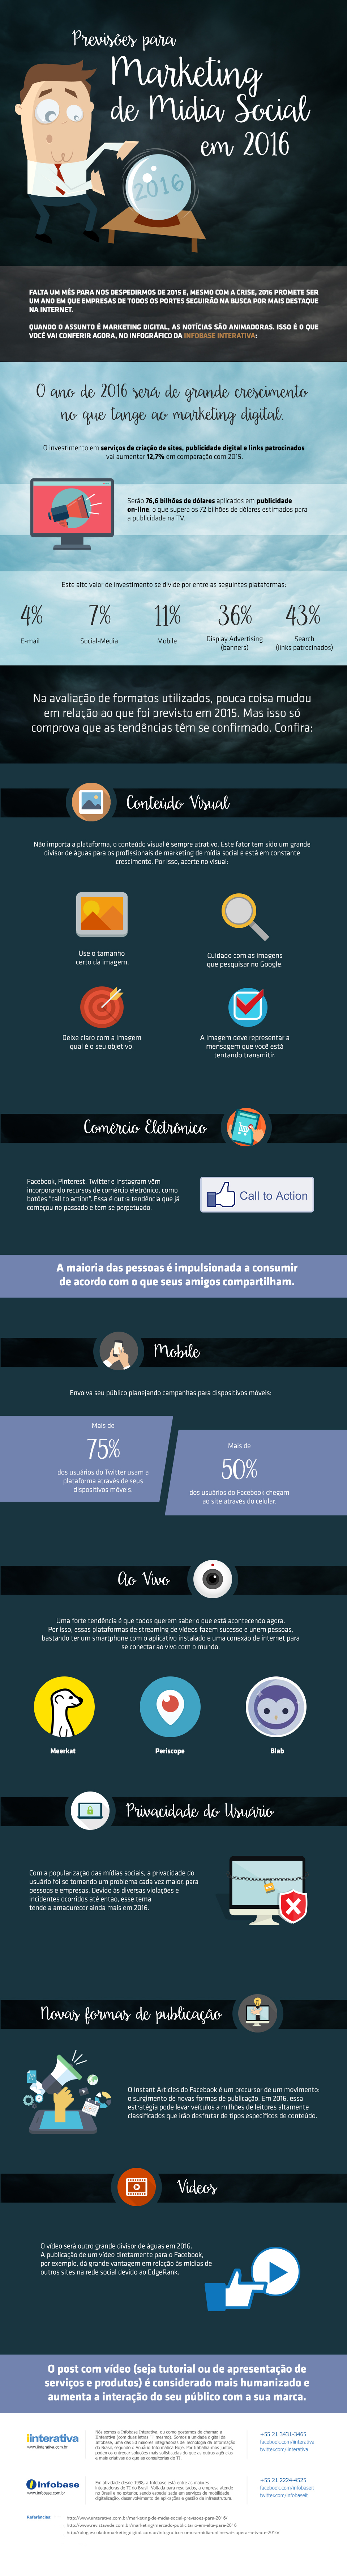 Infográfico-Previsões-para-Marketing-30.11